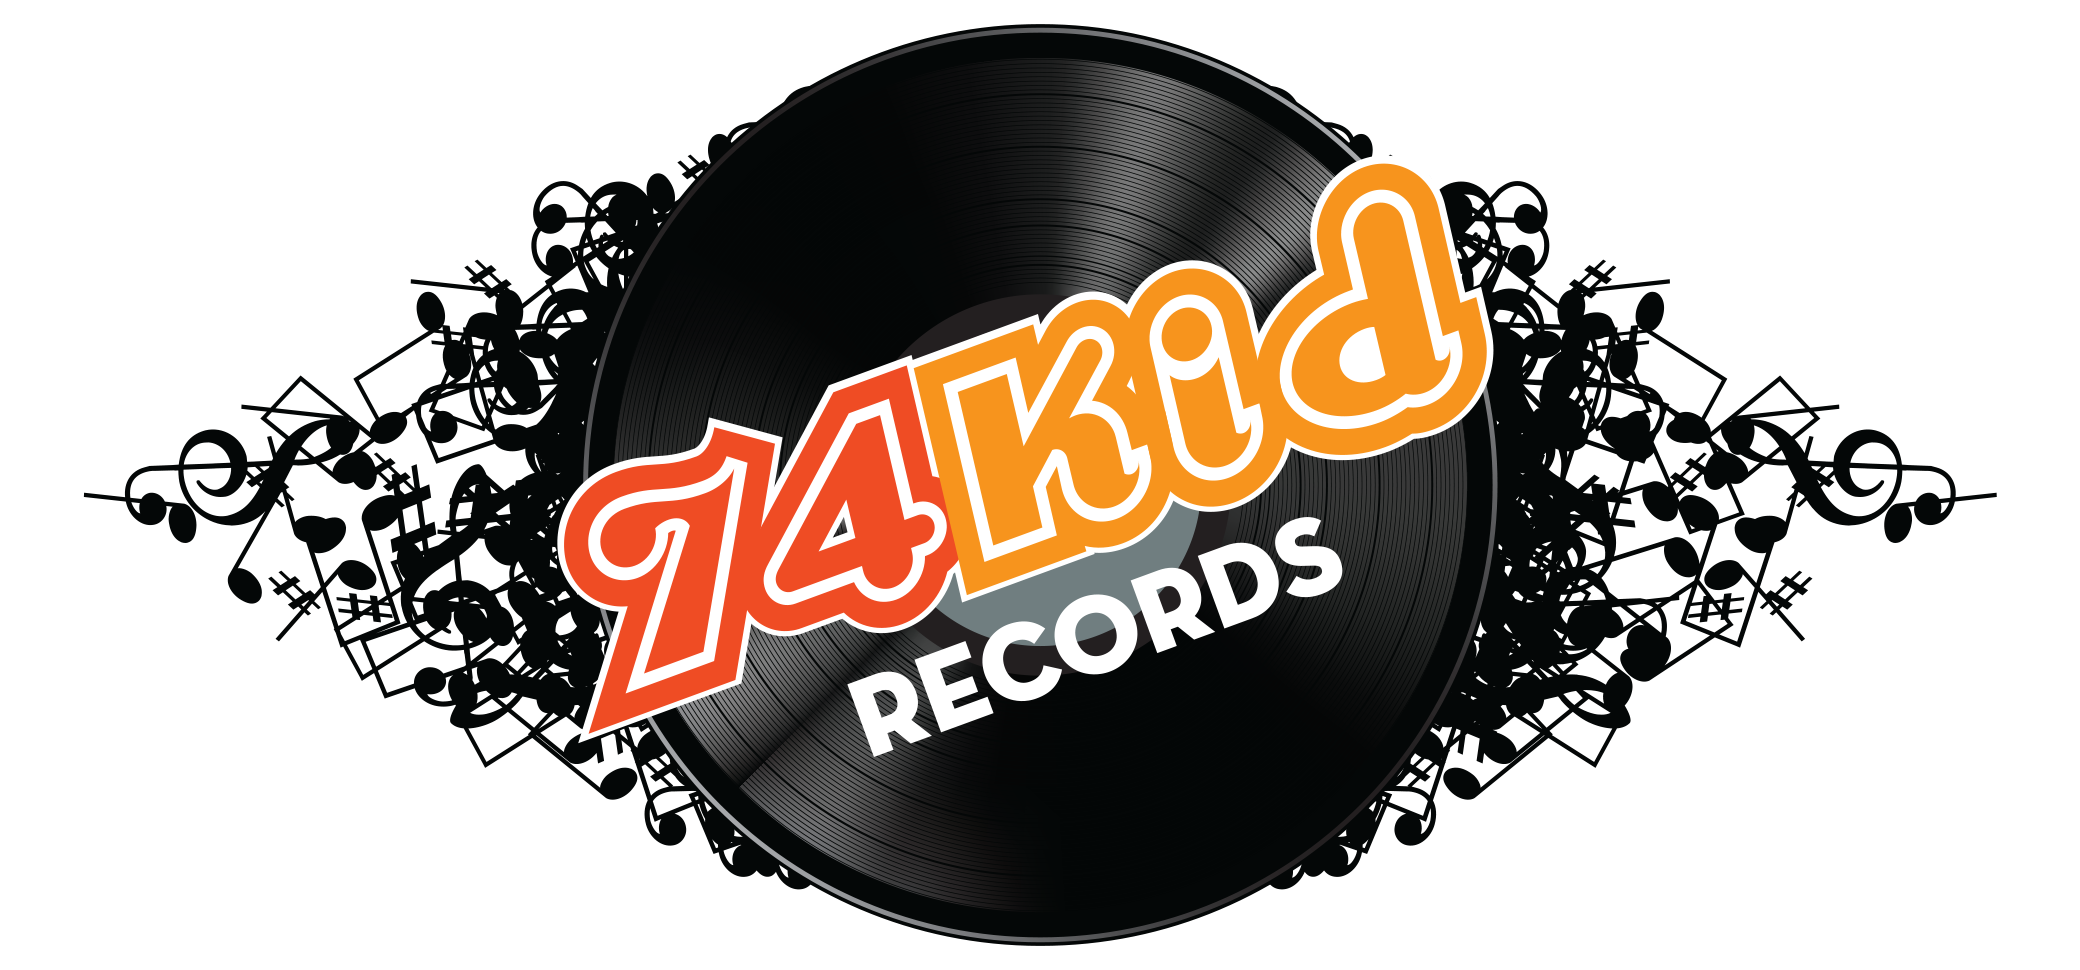 74 Kid Records